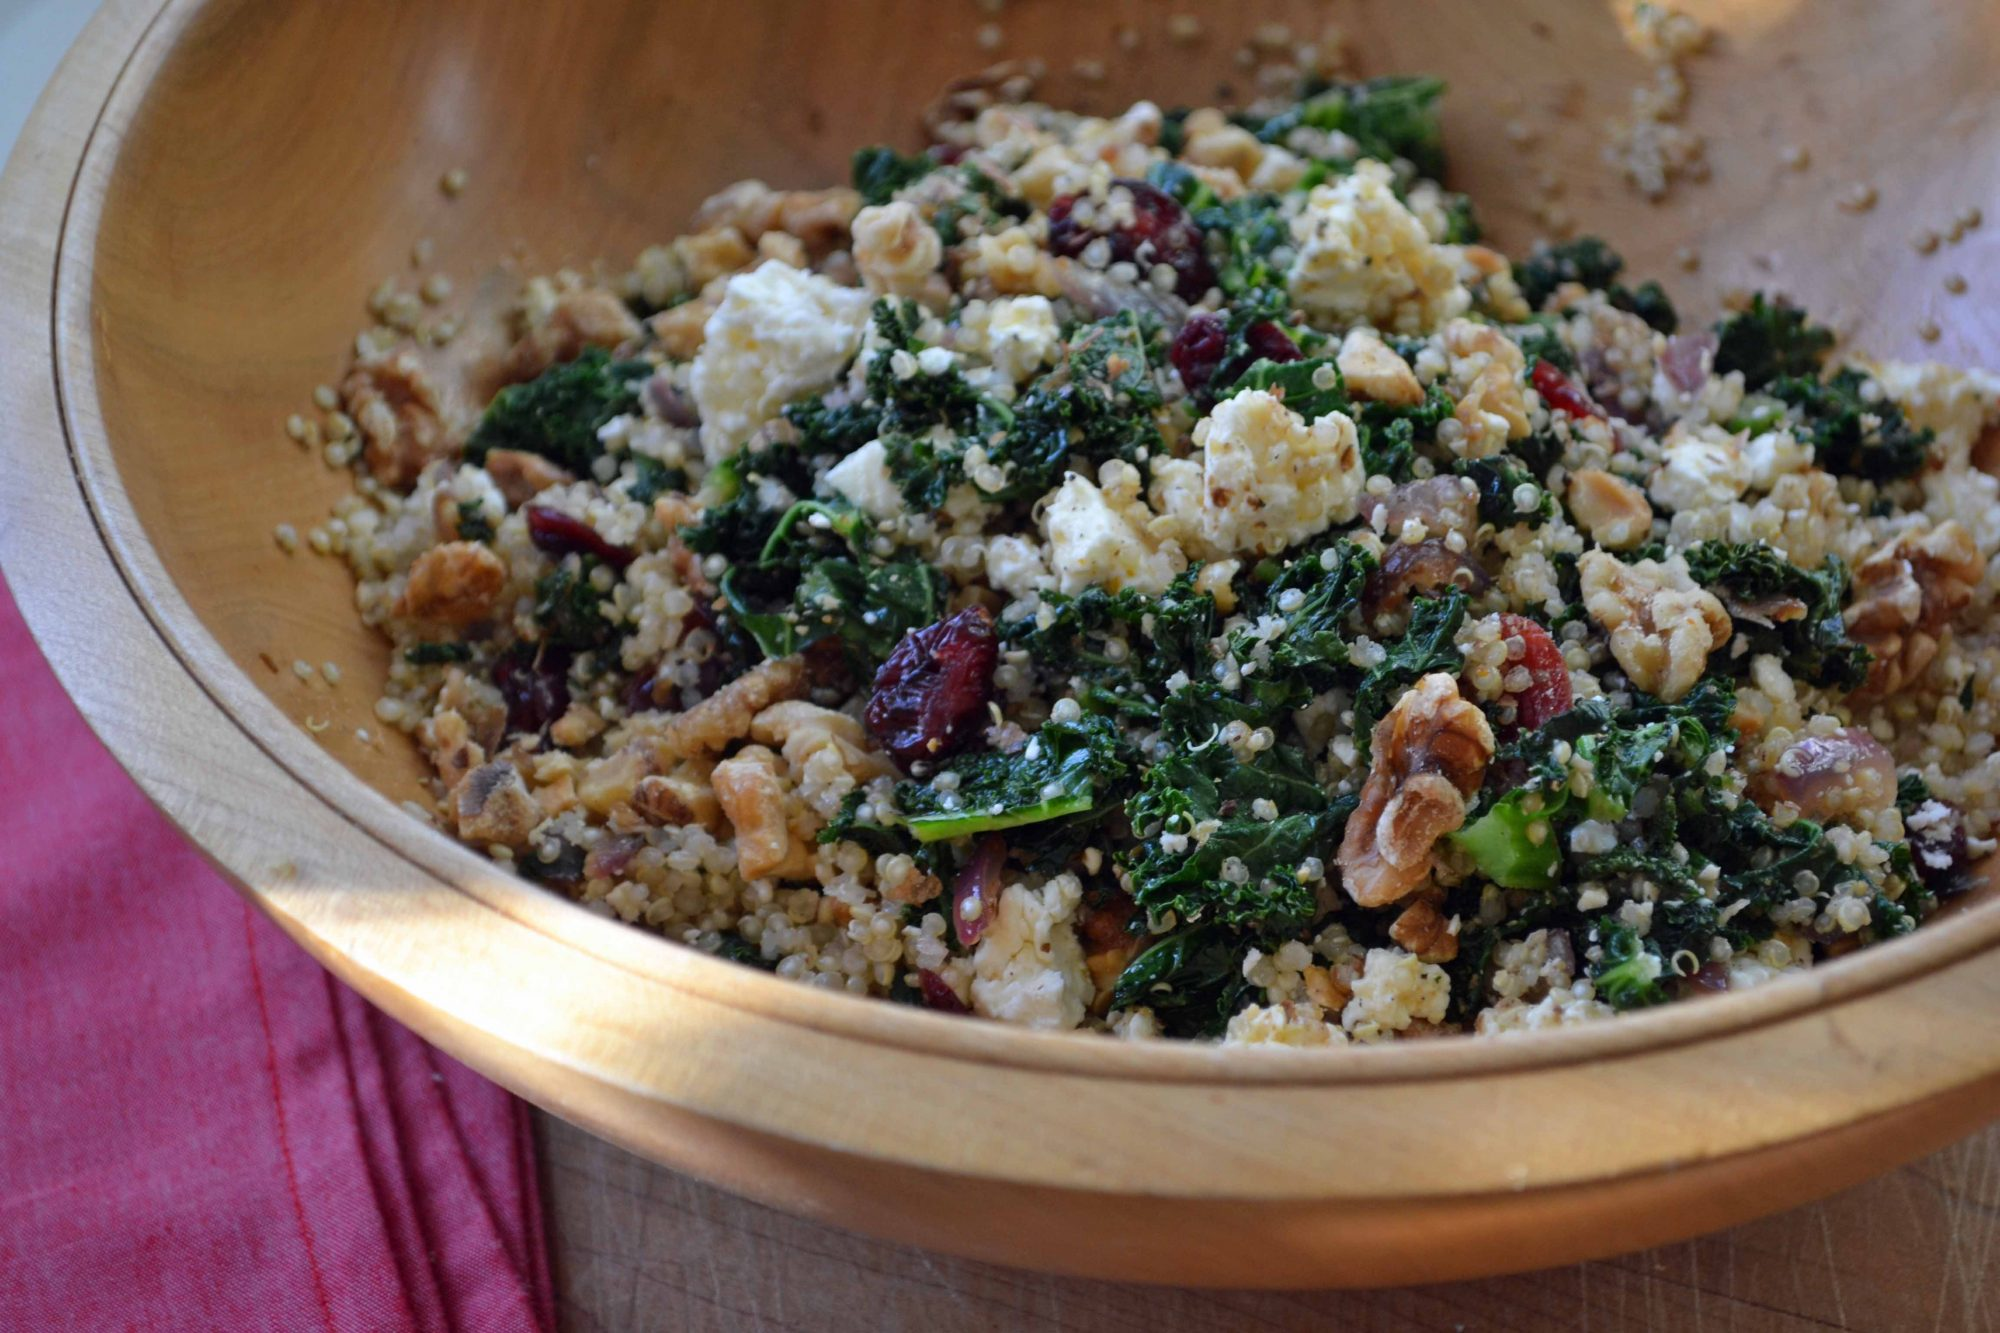 Kale and quinoa salad with cranberries and feta dinner with julie kale and quinoa salad with cranberries and feta recipe link forumfinder